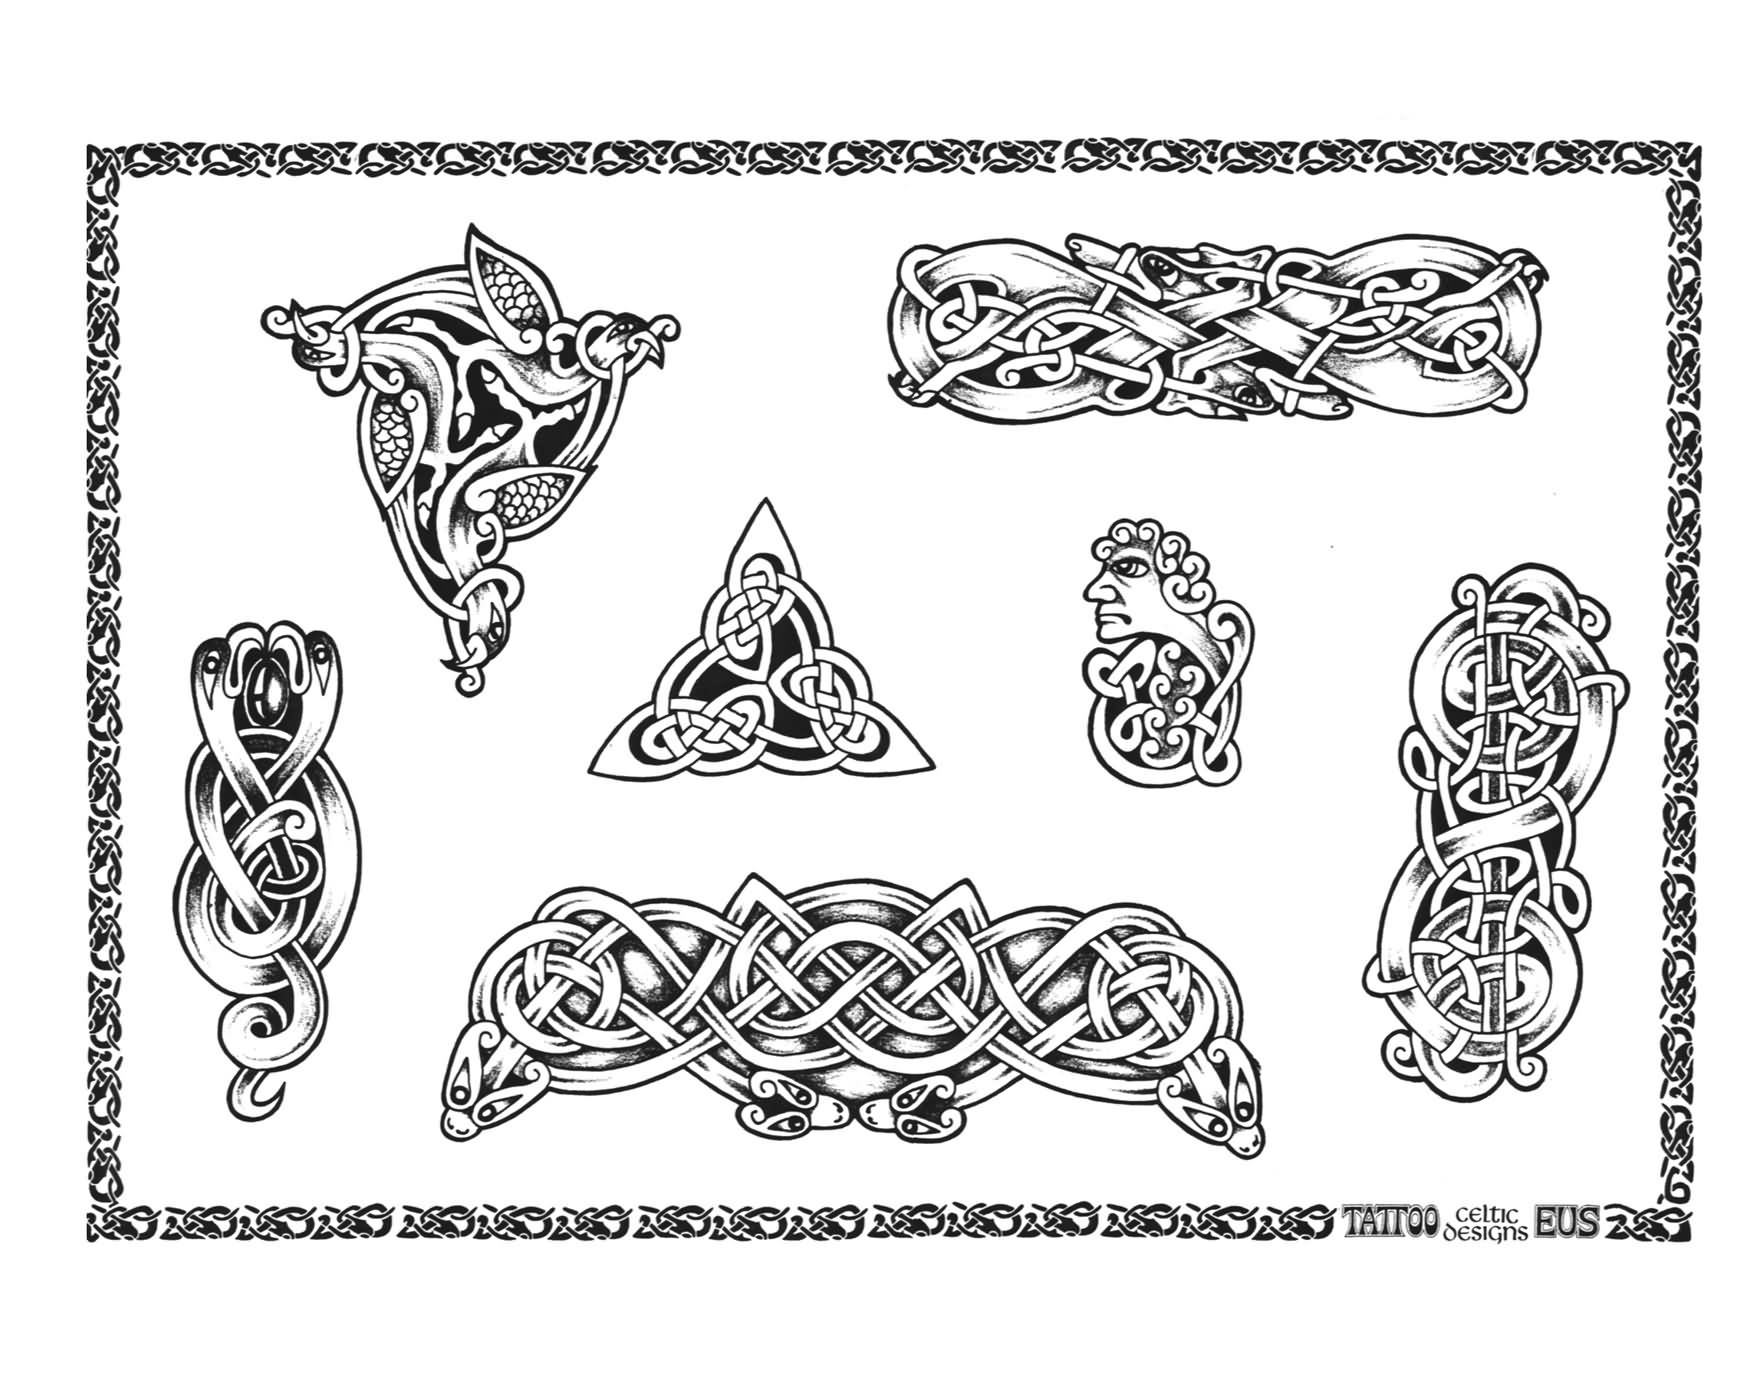 Scottish Celtic Knots And Their Meanings Irish Celtic Symbols And